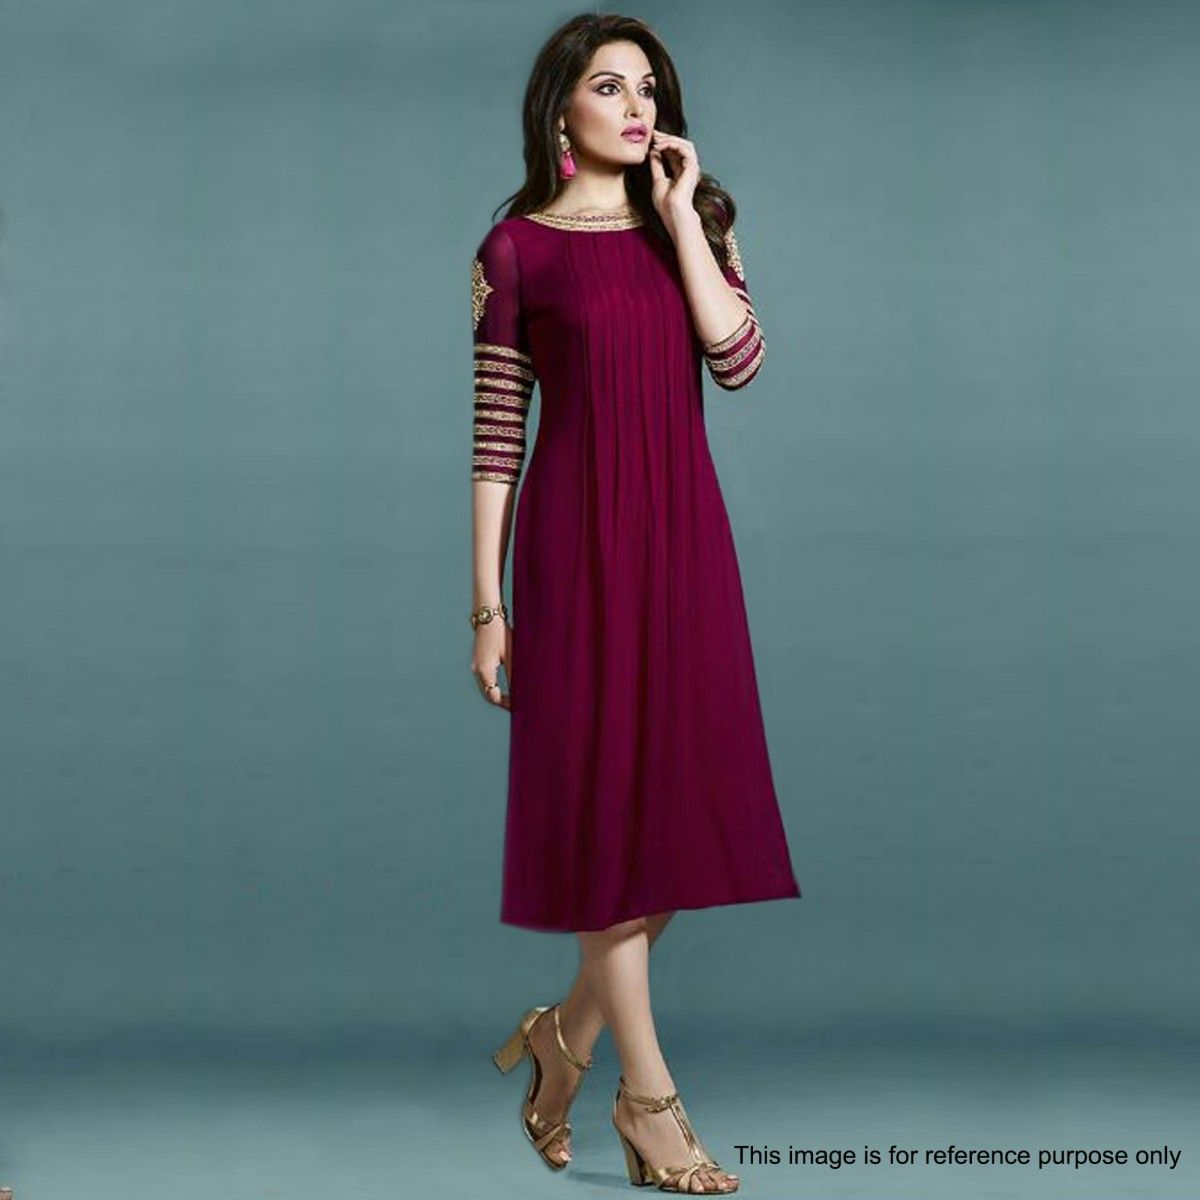 855a95047 Buy Maroon Party Wear Kurti - Latest Kurti Online Shopping at Peachmode